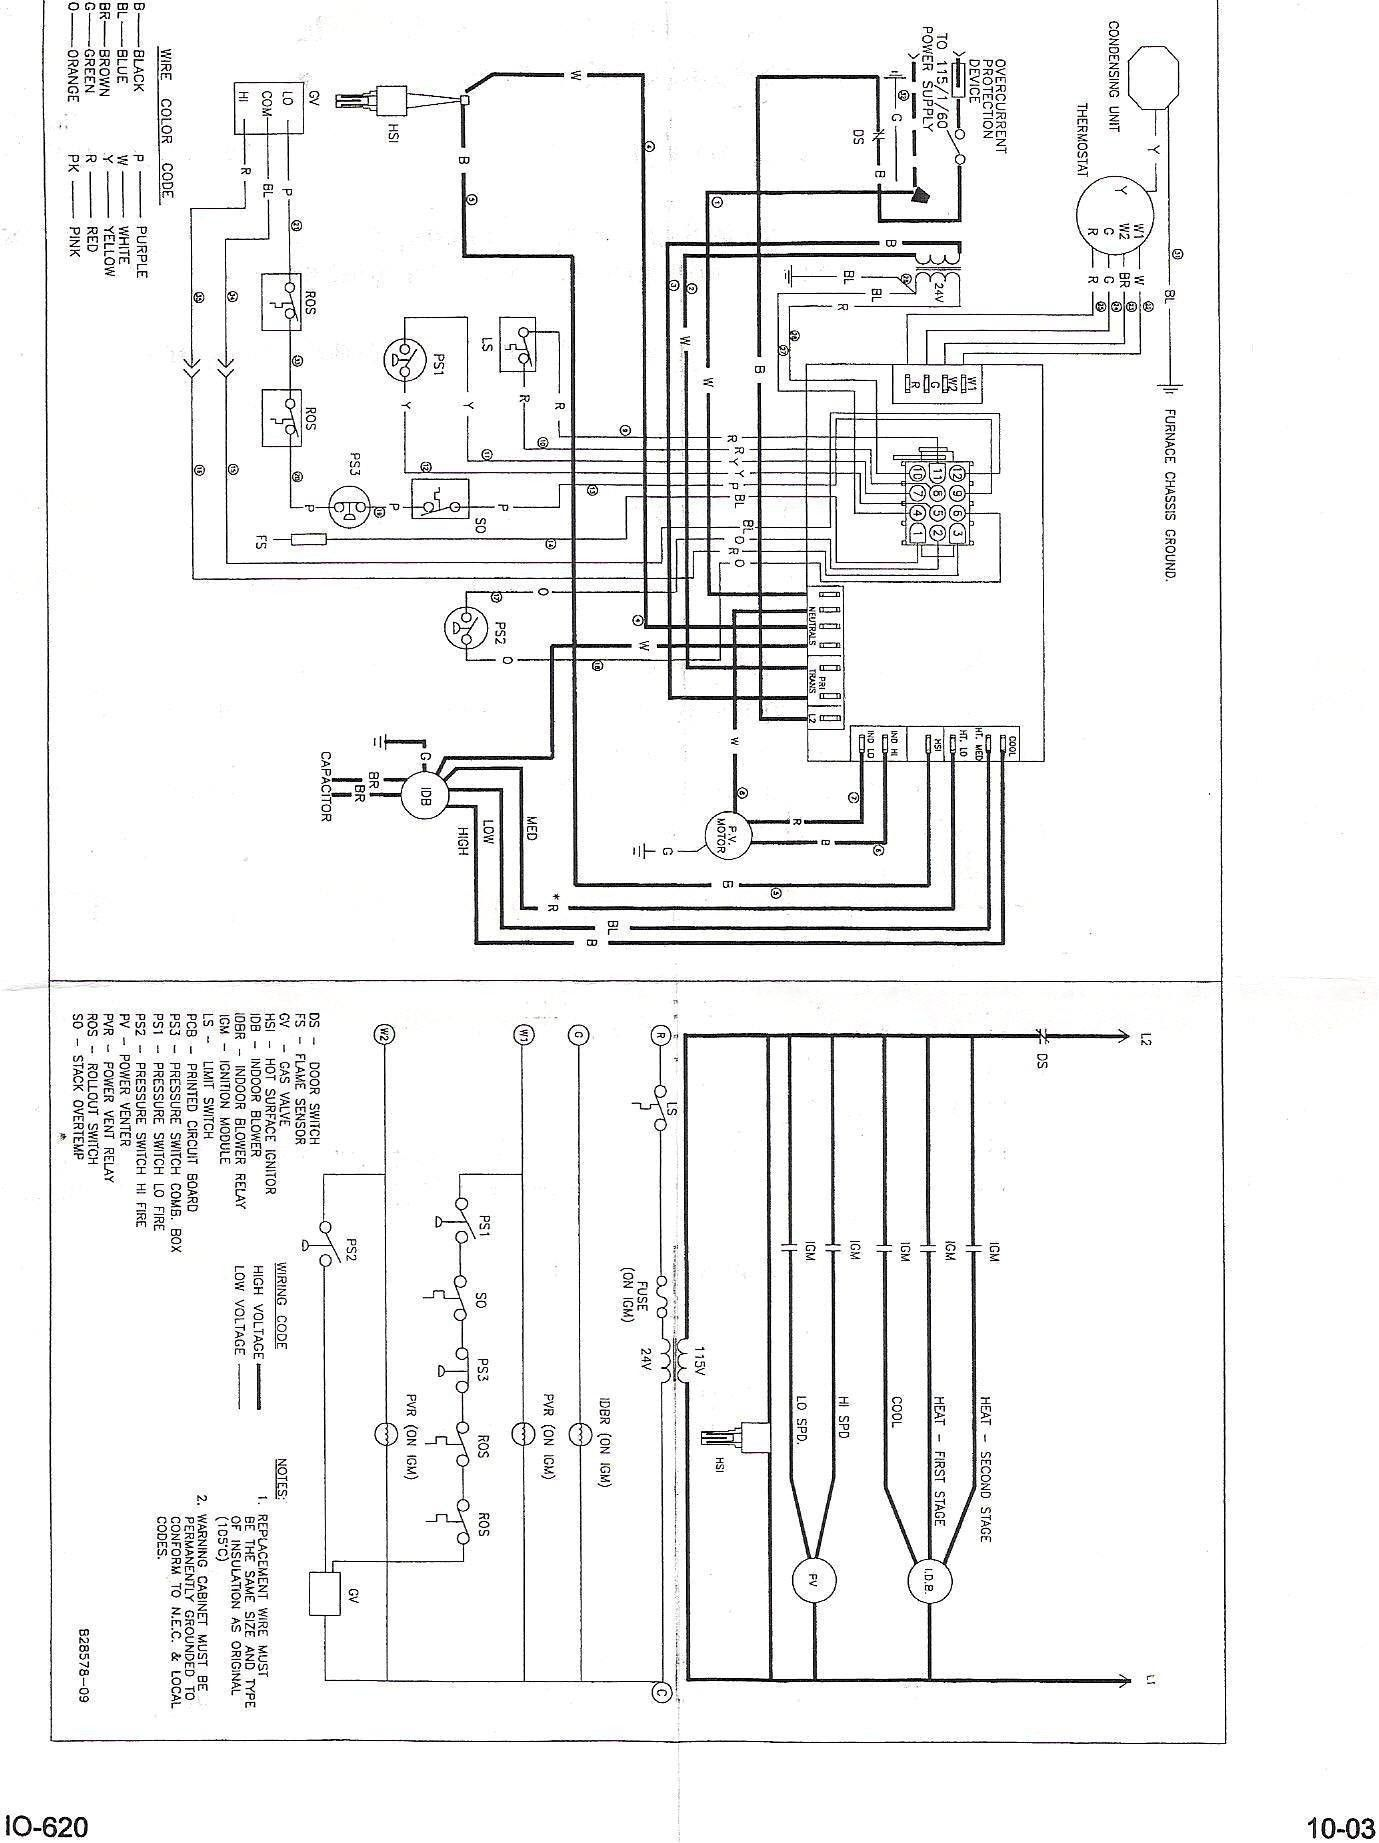 Trane Rooftop Unit Wiring Diagram from i.pinimg.com